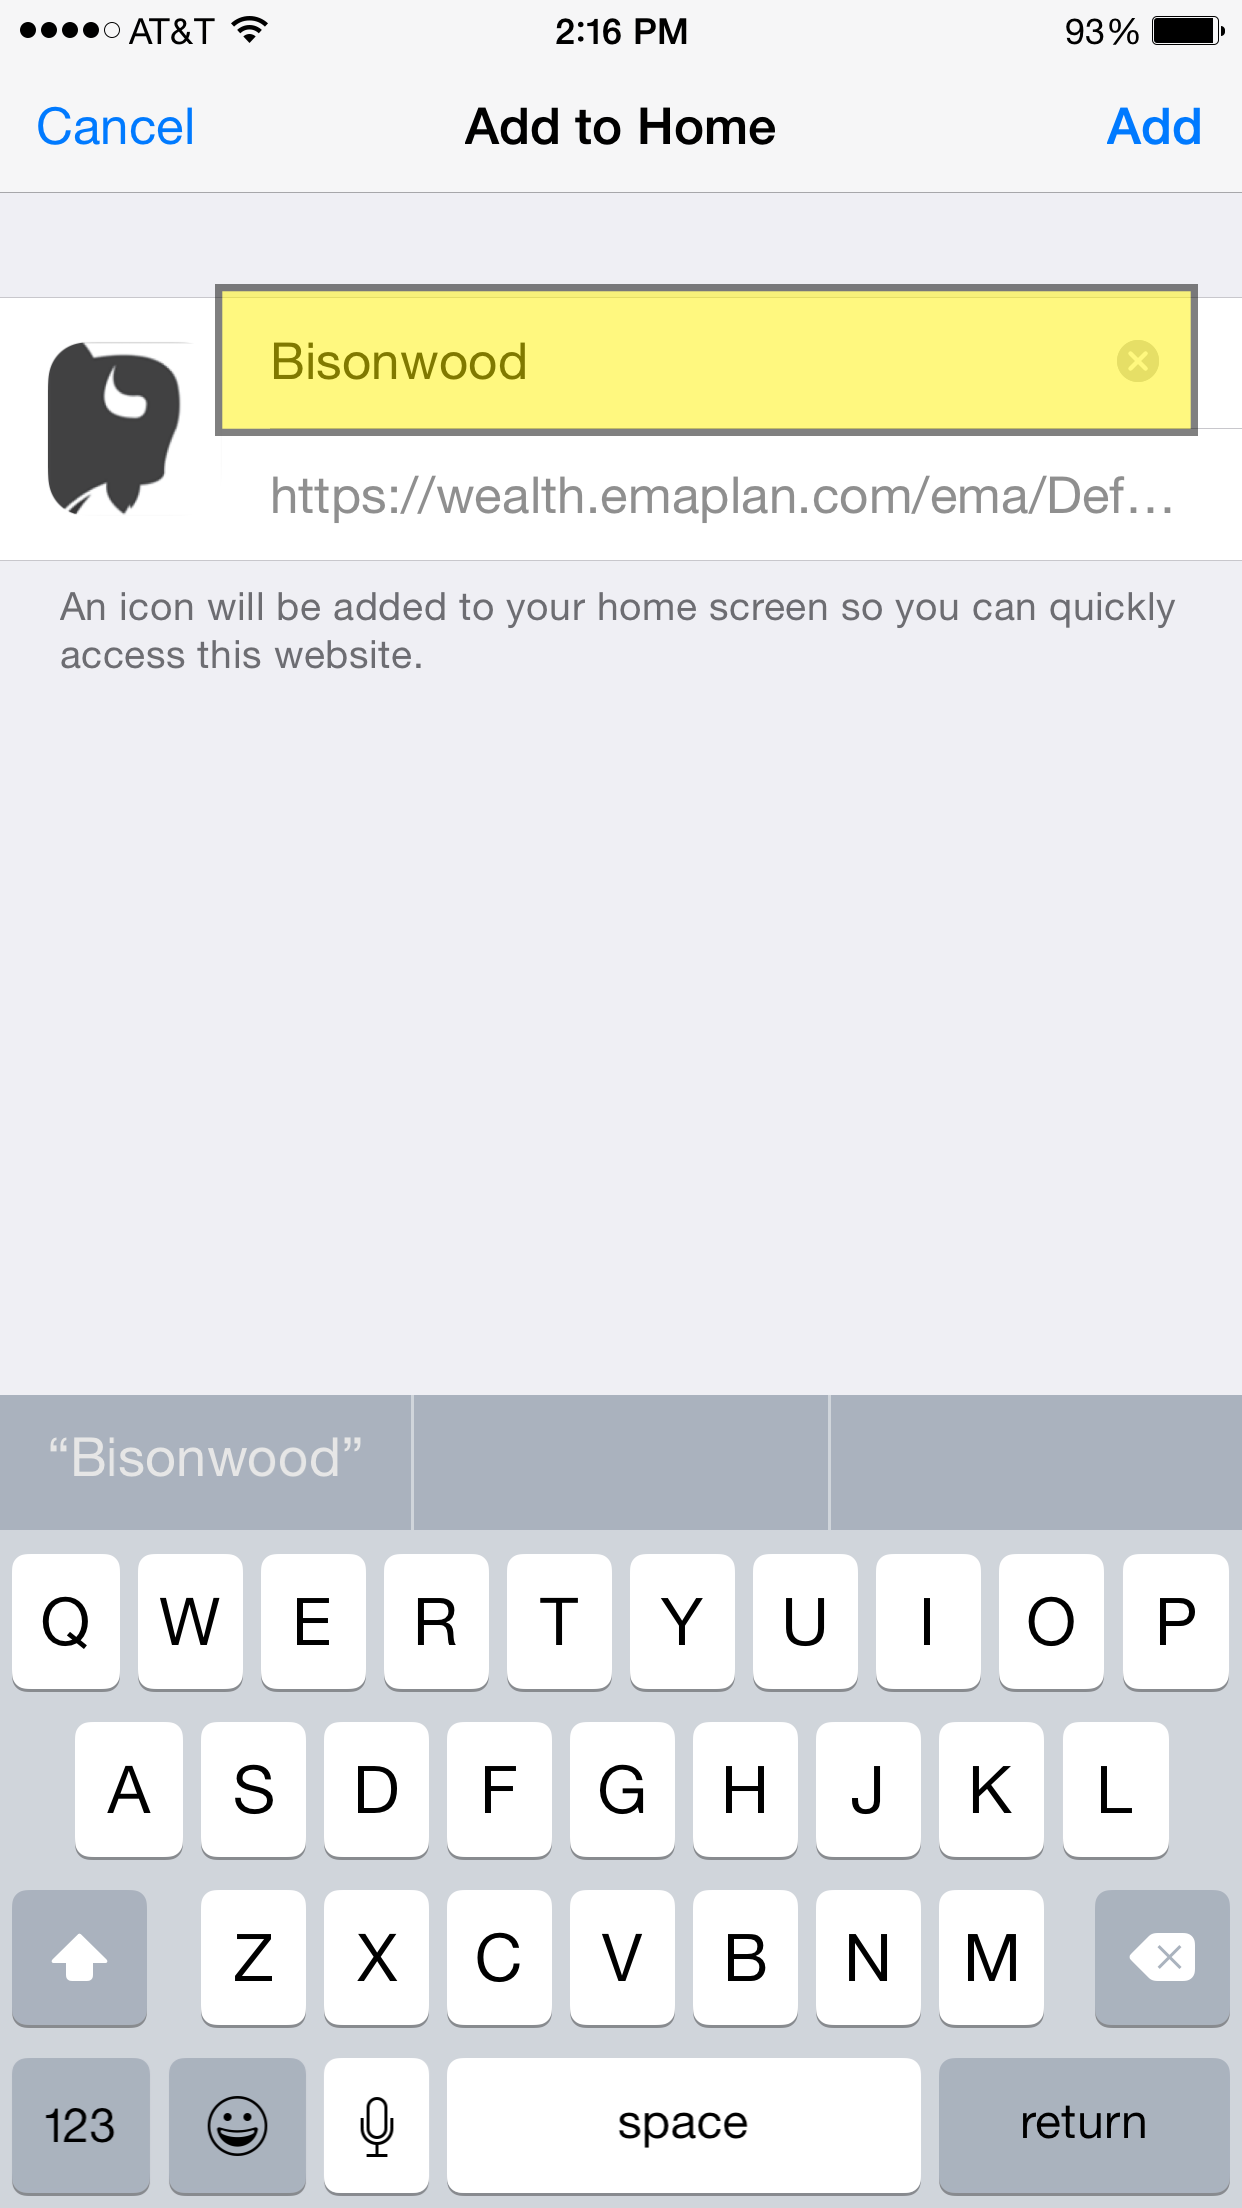 Rename the app to 'Bisonwood,' which'll help you find it in the future.